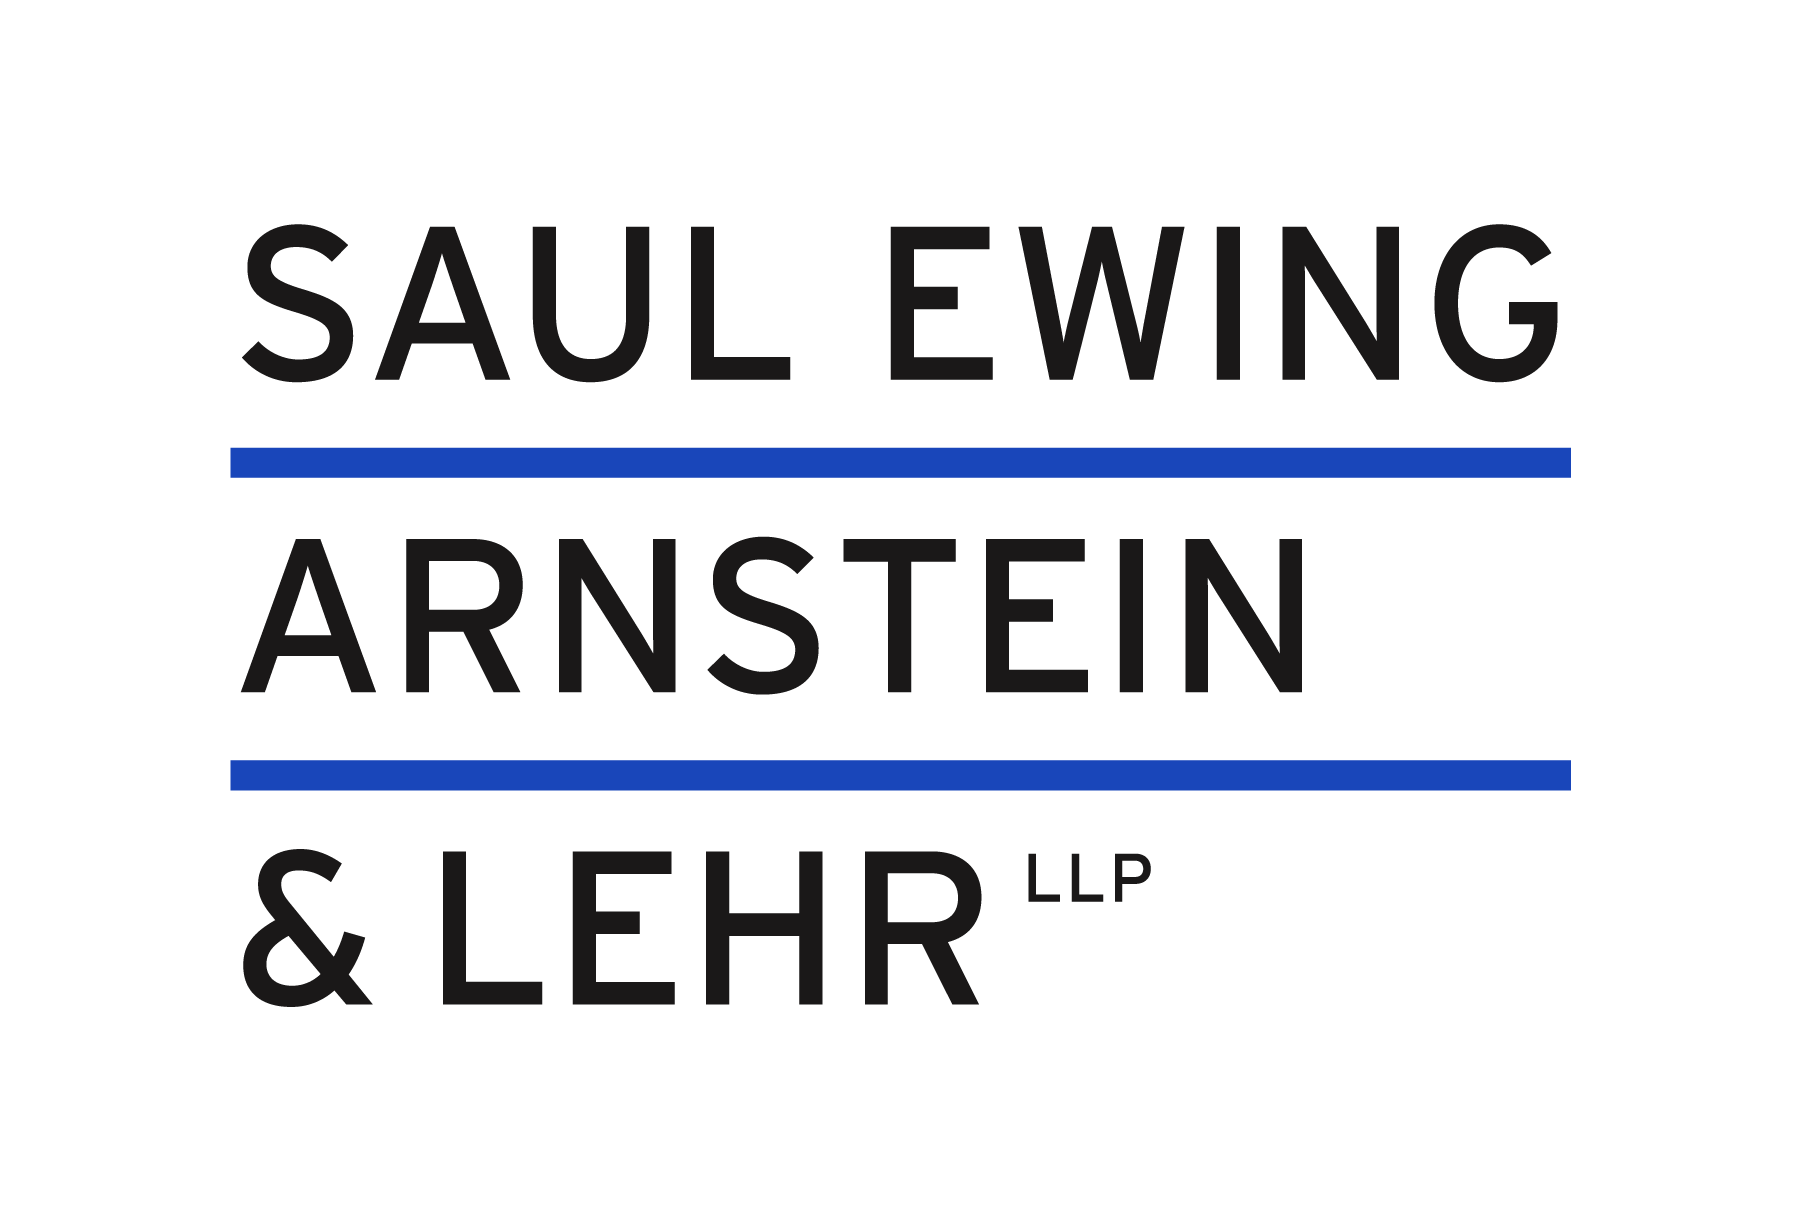 Connect with Saul Ewing Arnstein & Lehr